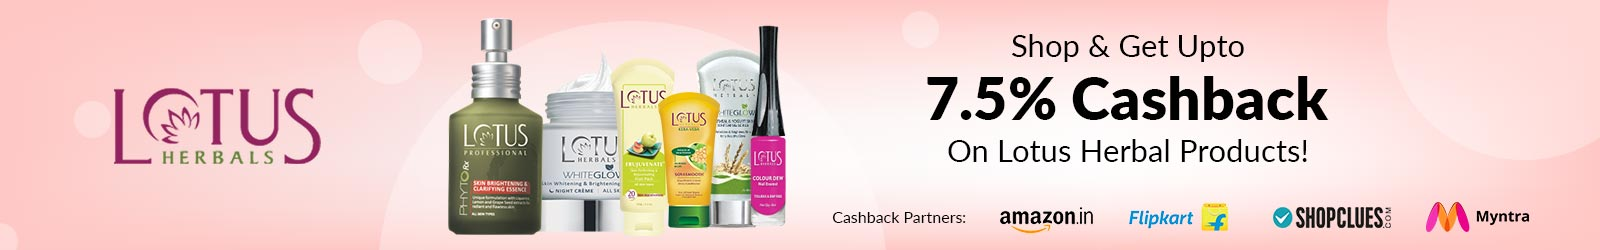 Lotus Products Price List India: Upto 50% Off Offers Online